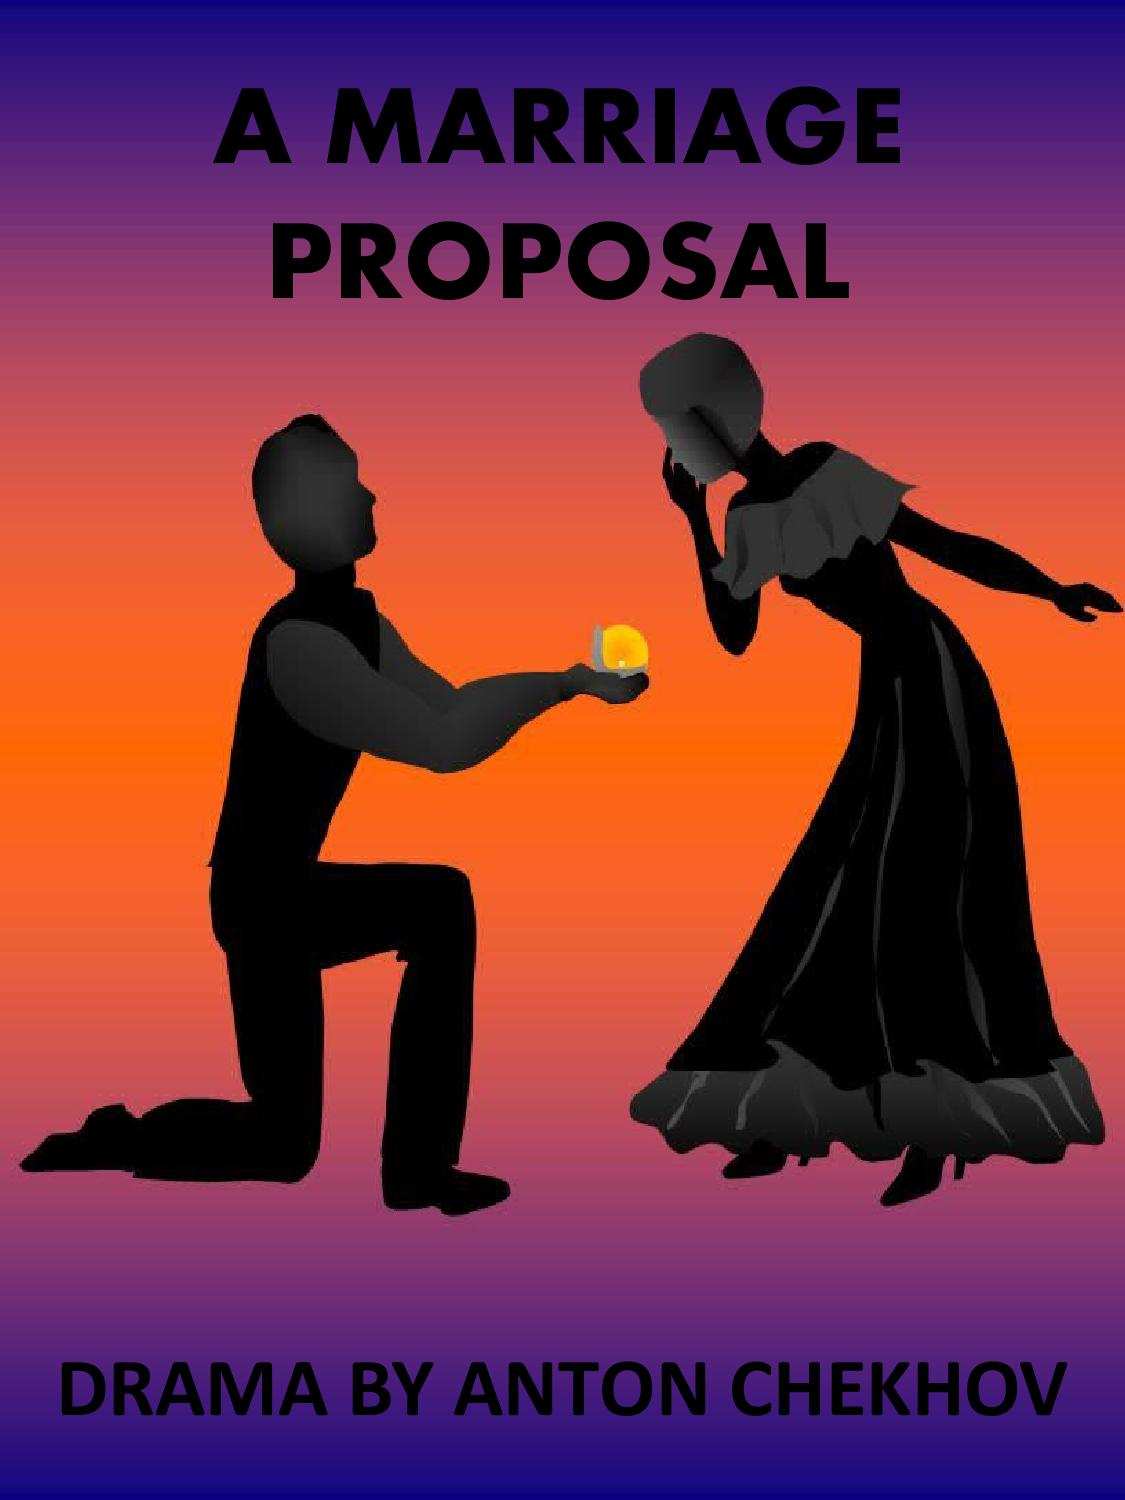 How To Accept A Marriage Proposal